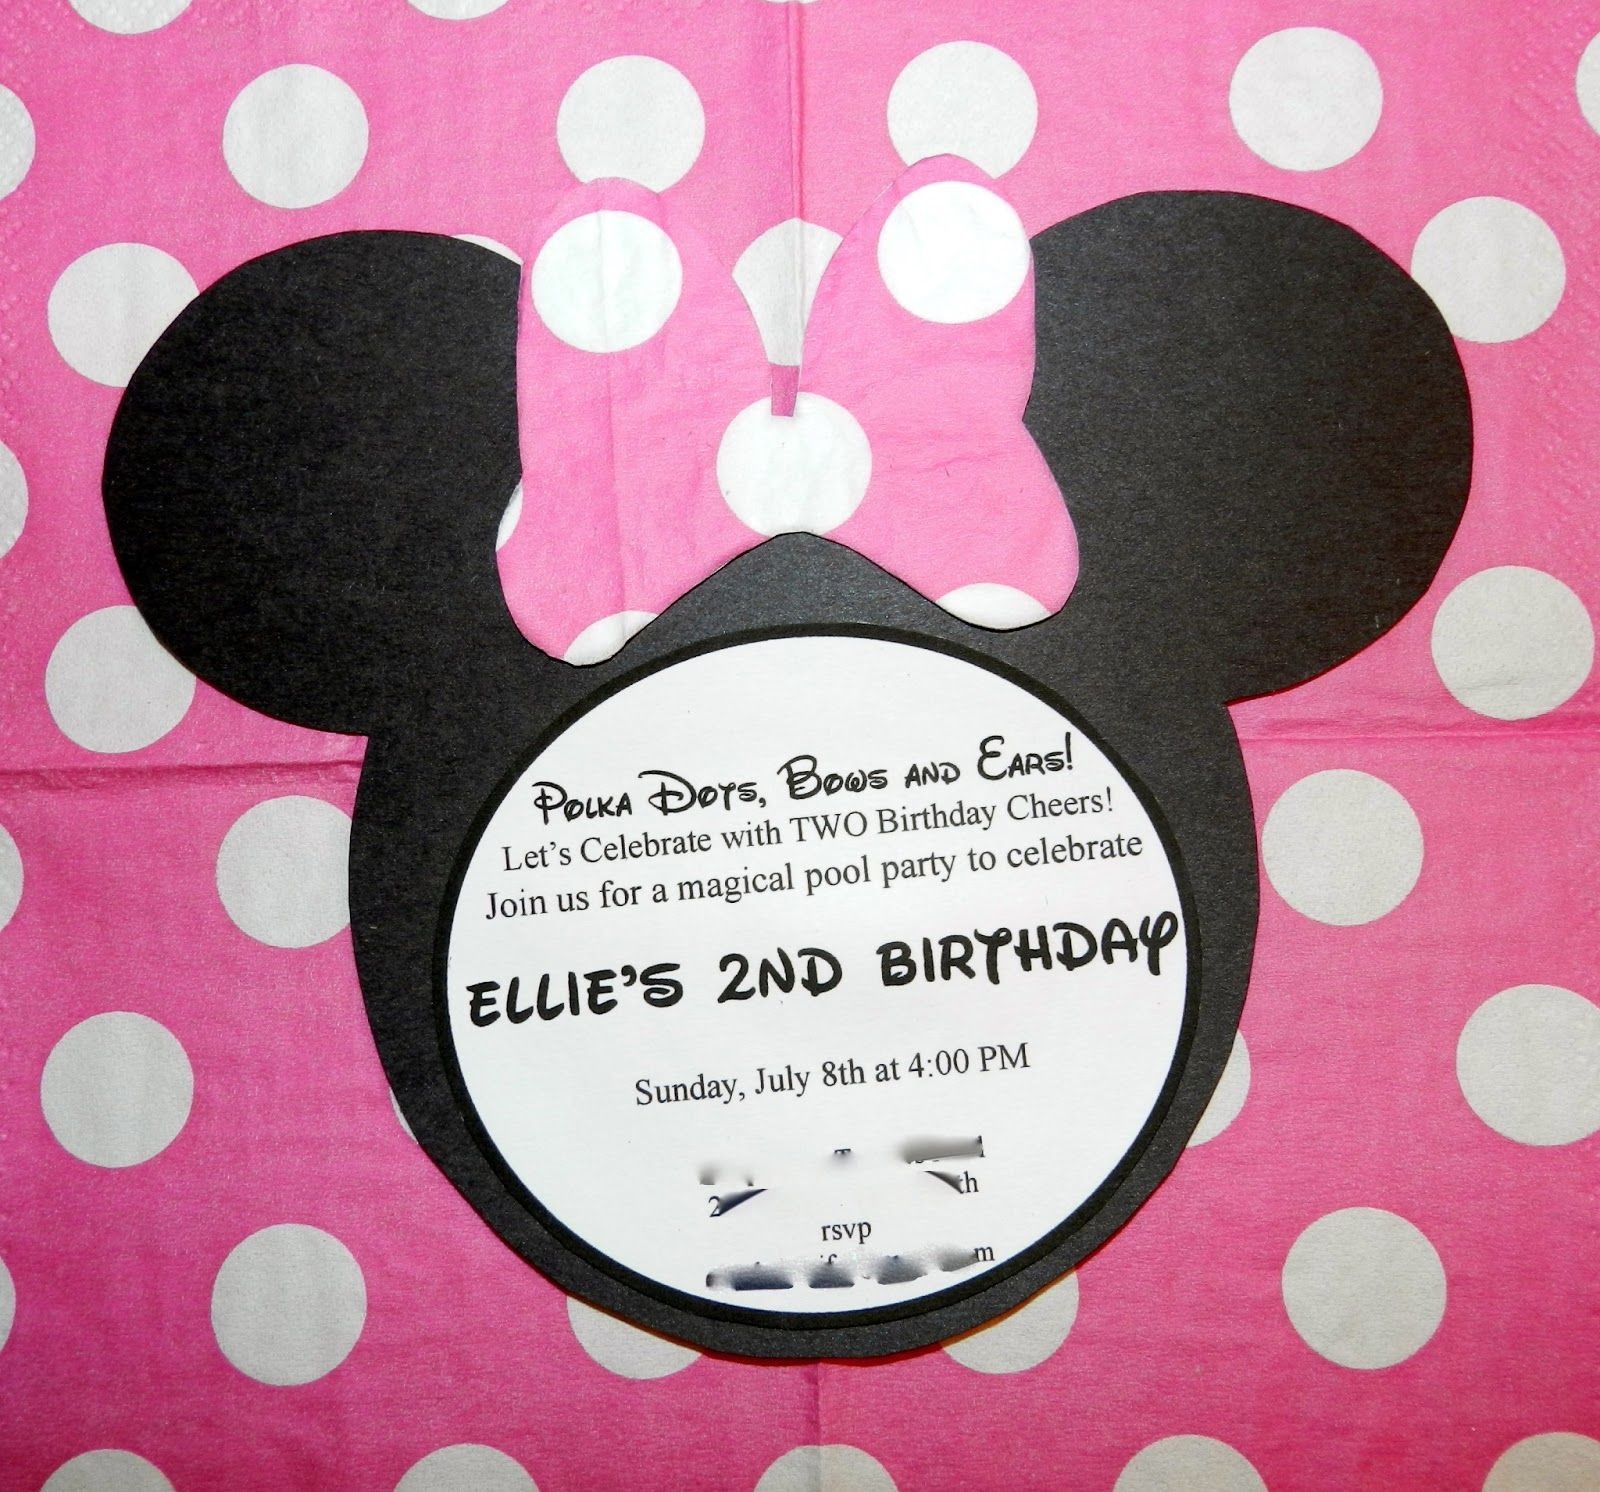 Mickey And Minnie Party Invitations to make a birthday card create – Mickey and Minnie Party Invitations